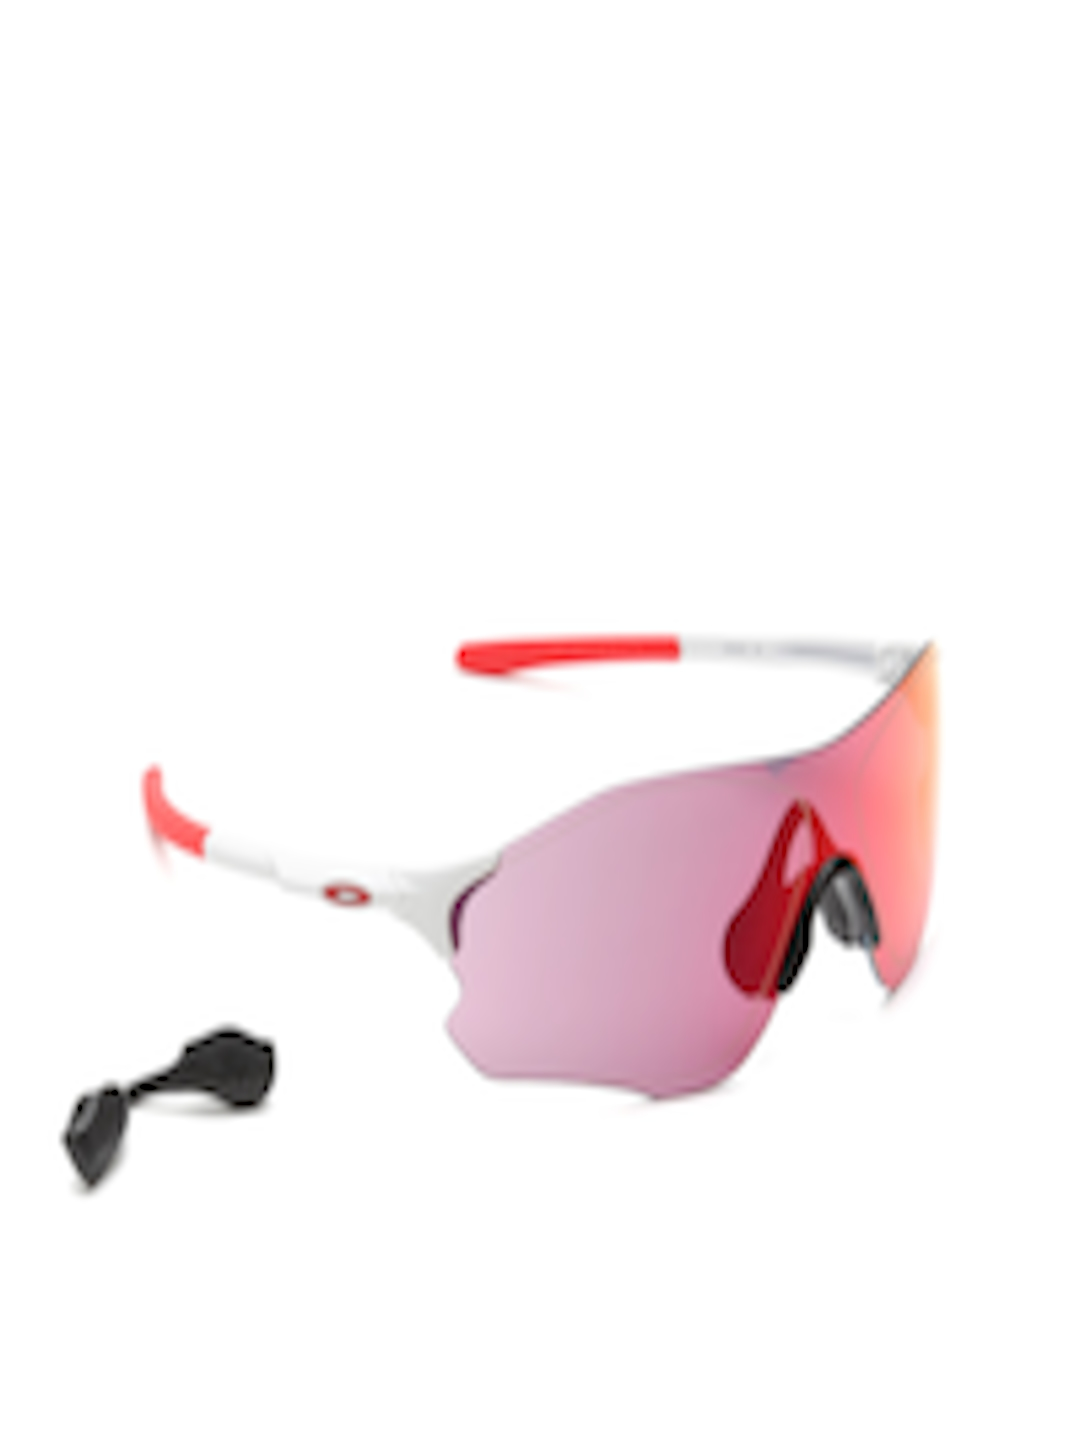 cf95efab9c Buy OAKLEY Men Mirrored Rimless Sports Sunglasses 0OO930893080638 -  Sunglasses for Men 1639557